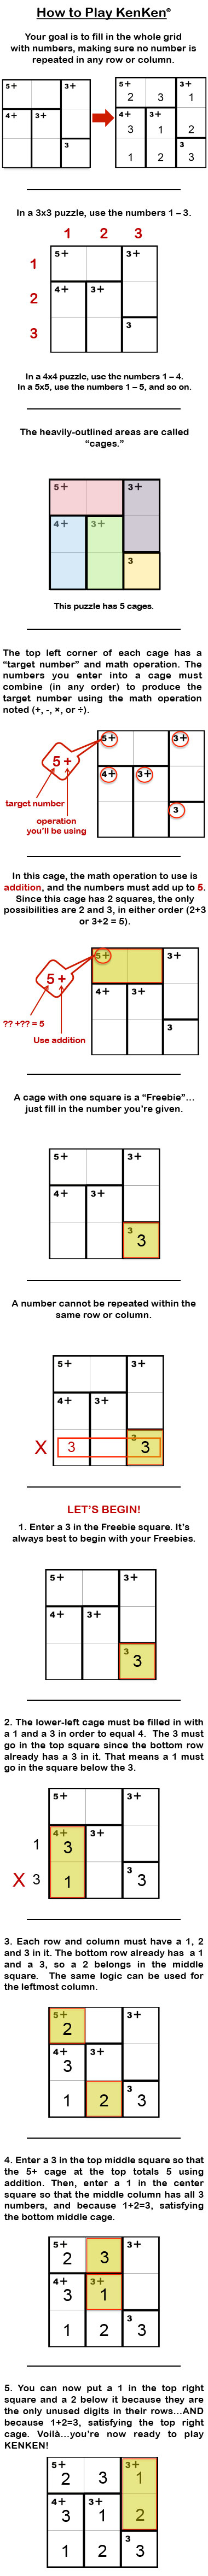 Kenken Puzzle Rules - How To Play This Amazing Puzzle & Brain Teaser! - Printable Kenken Puzzles 6X6